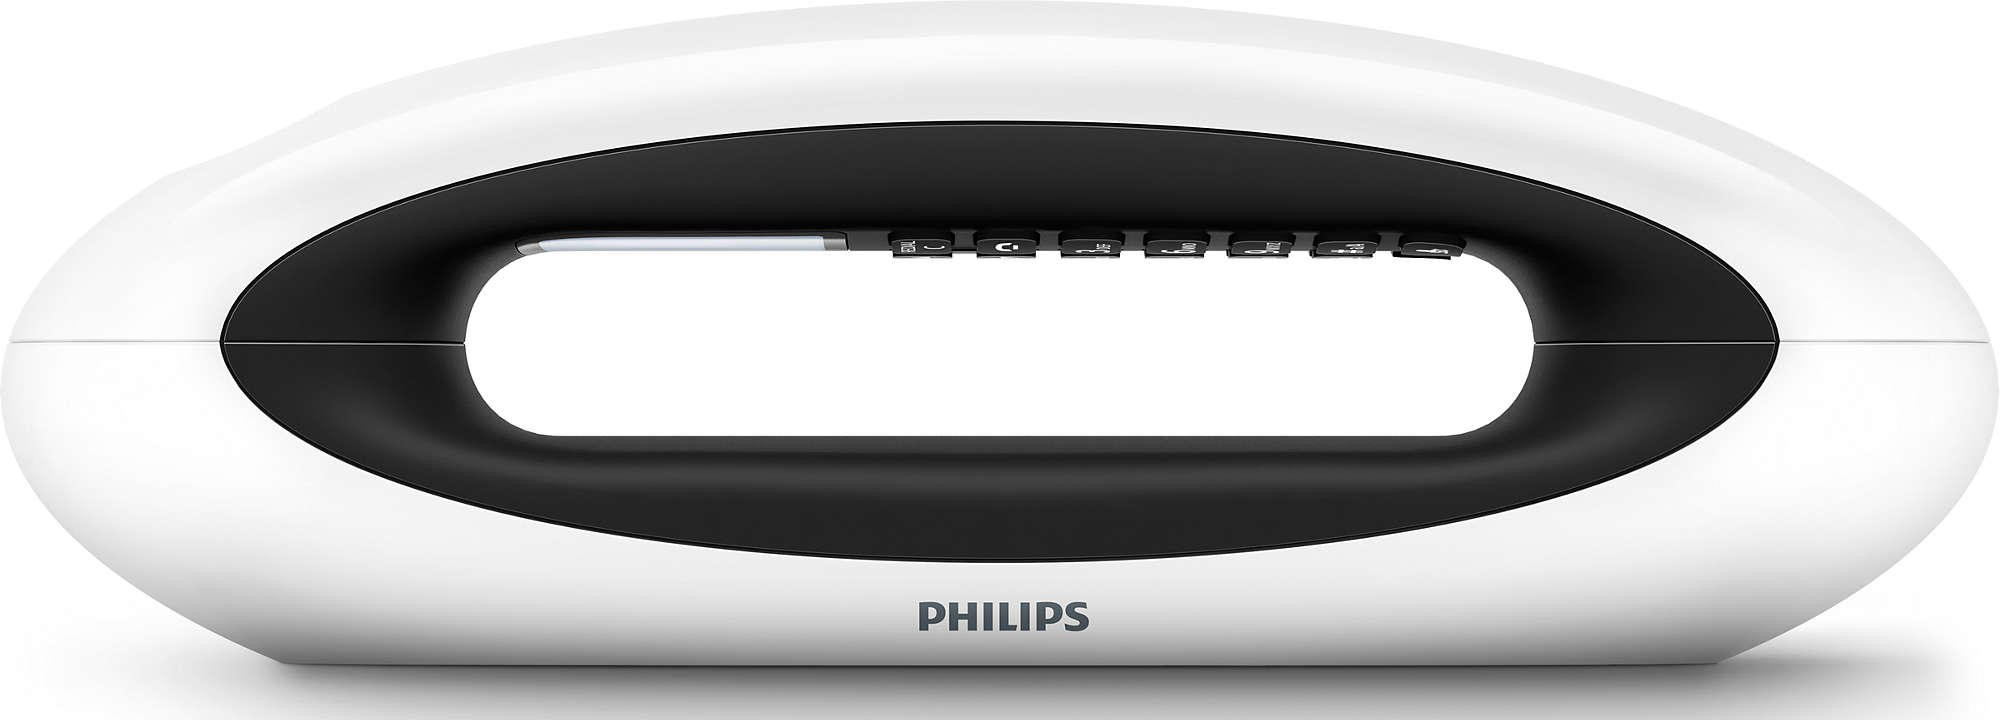 PHILIPS - M 5601 WG/FR